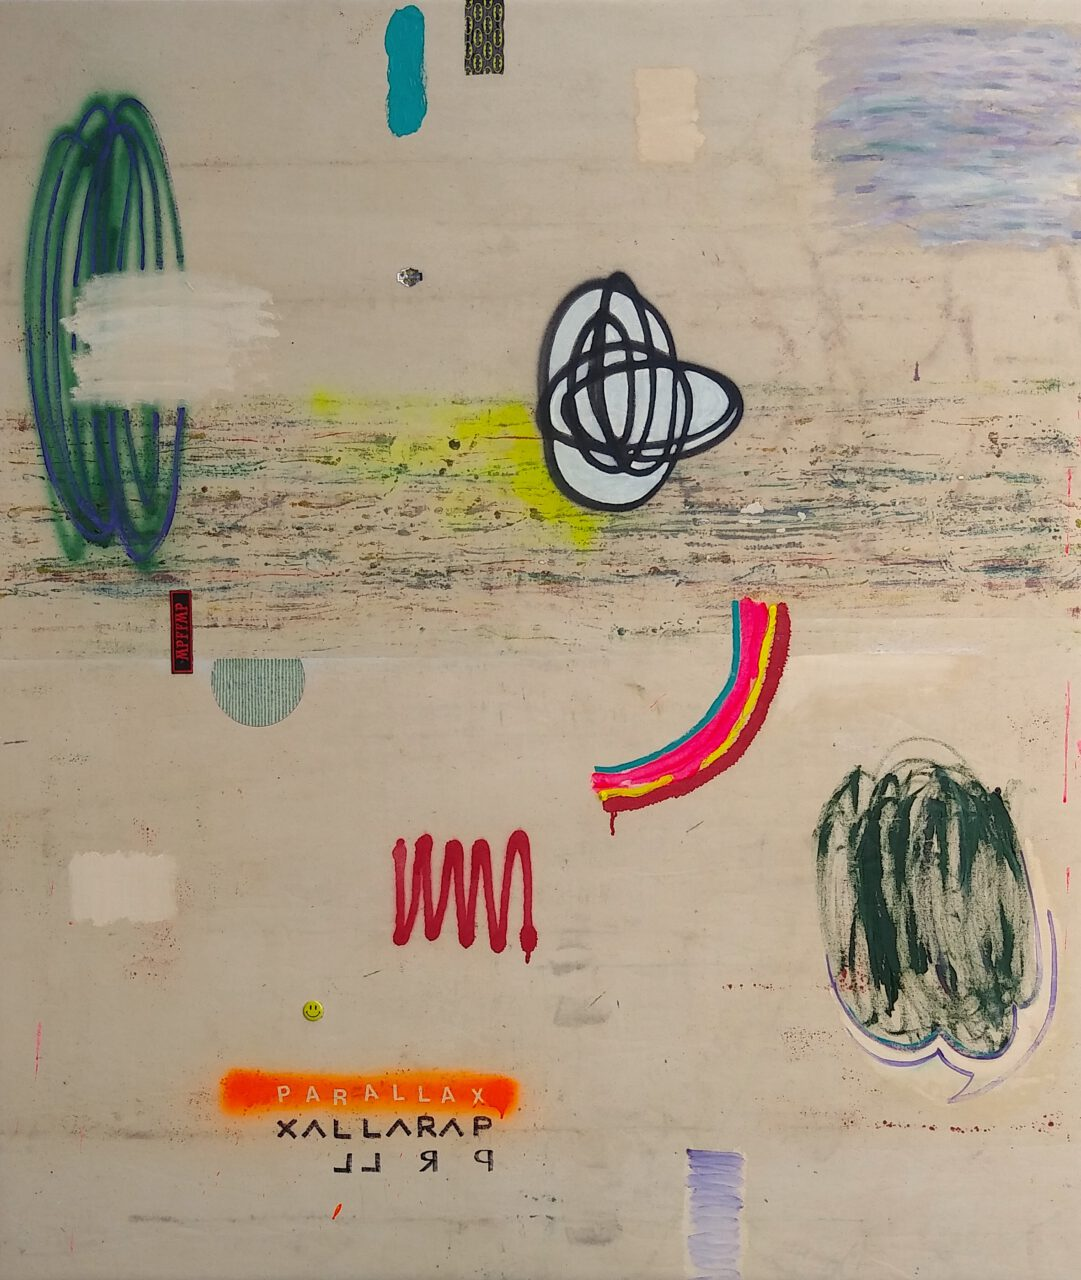 Parallax #1. 2021. oil, spray paint, acrylic, marker, collage elements on canvas over panel. 63 x 53 inches